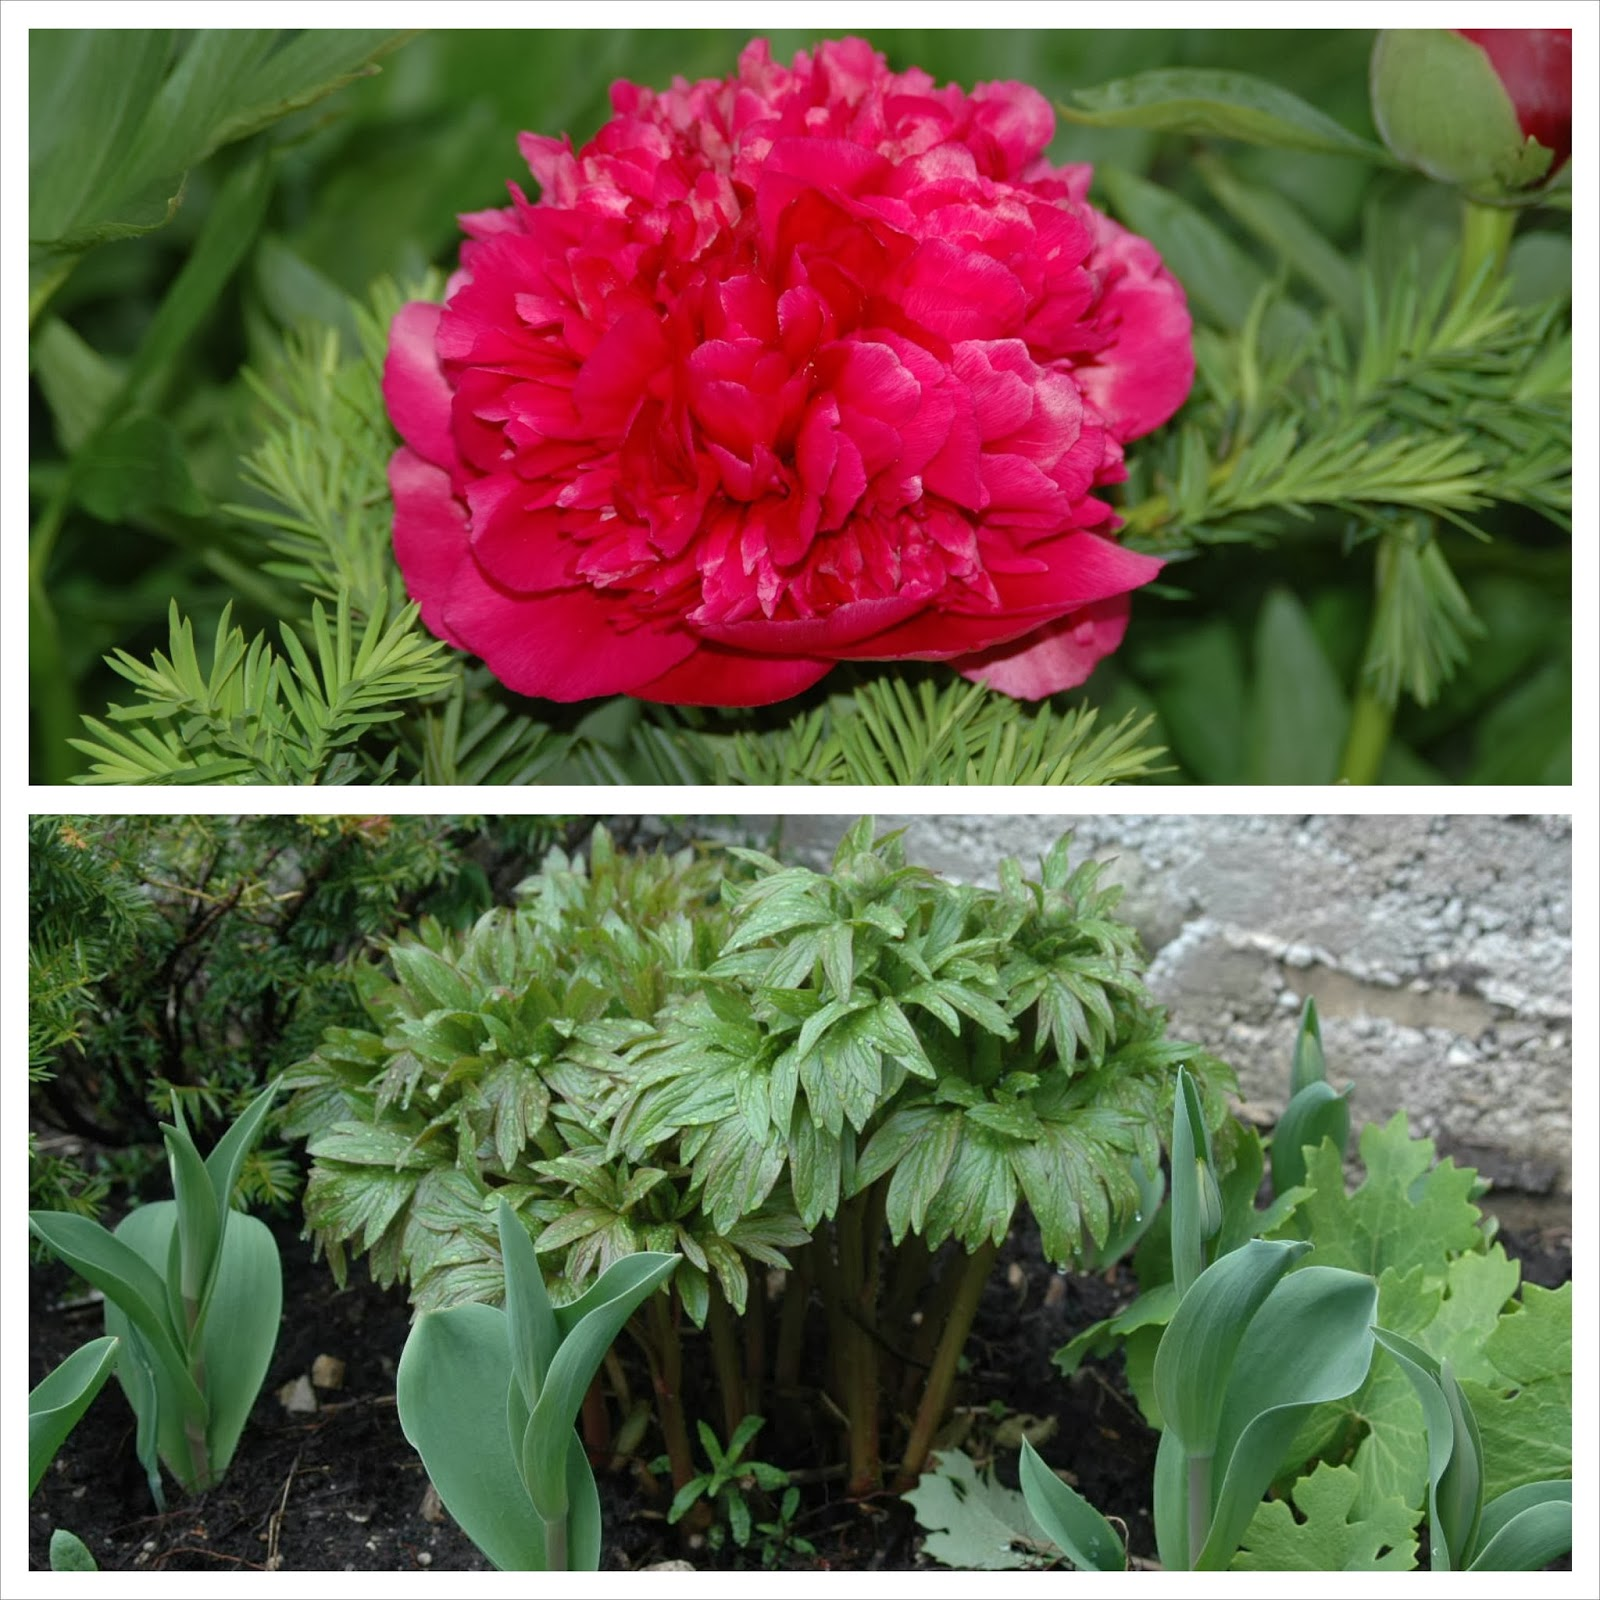 Unidentified, early short red peony